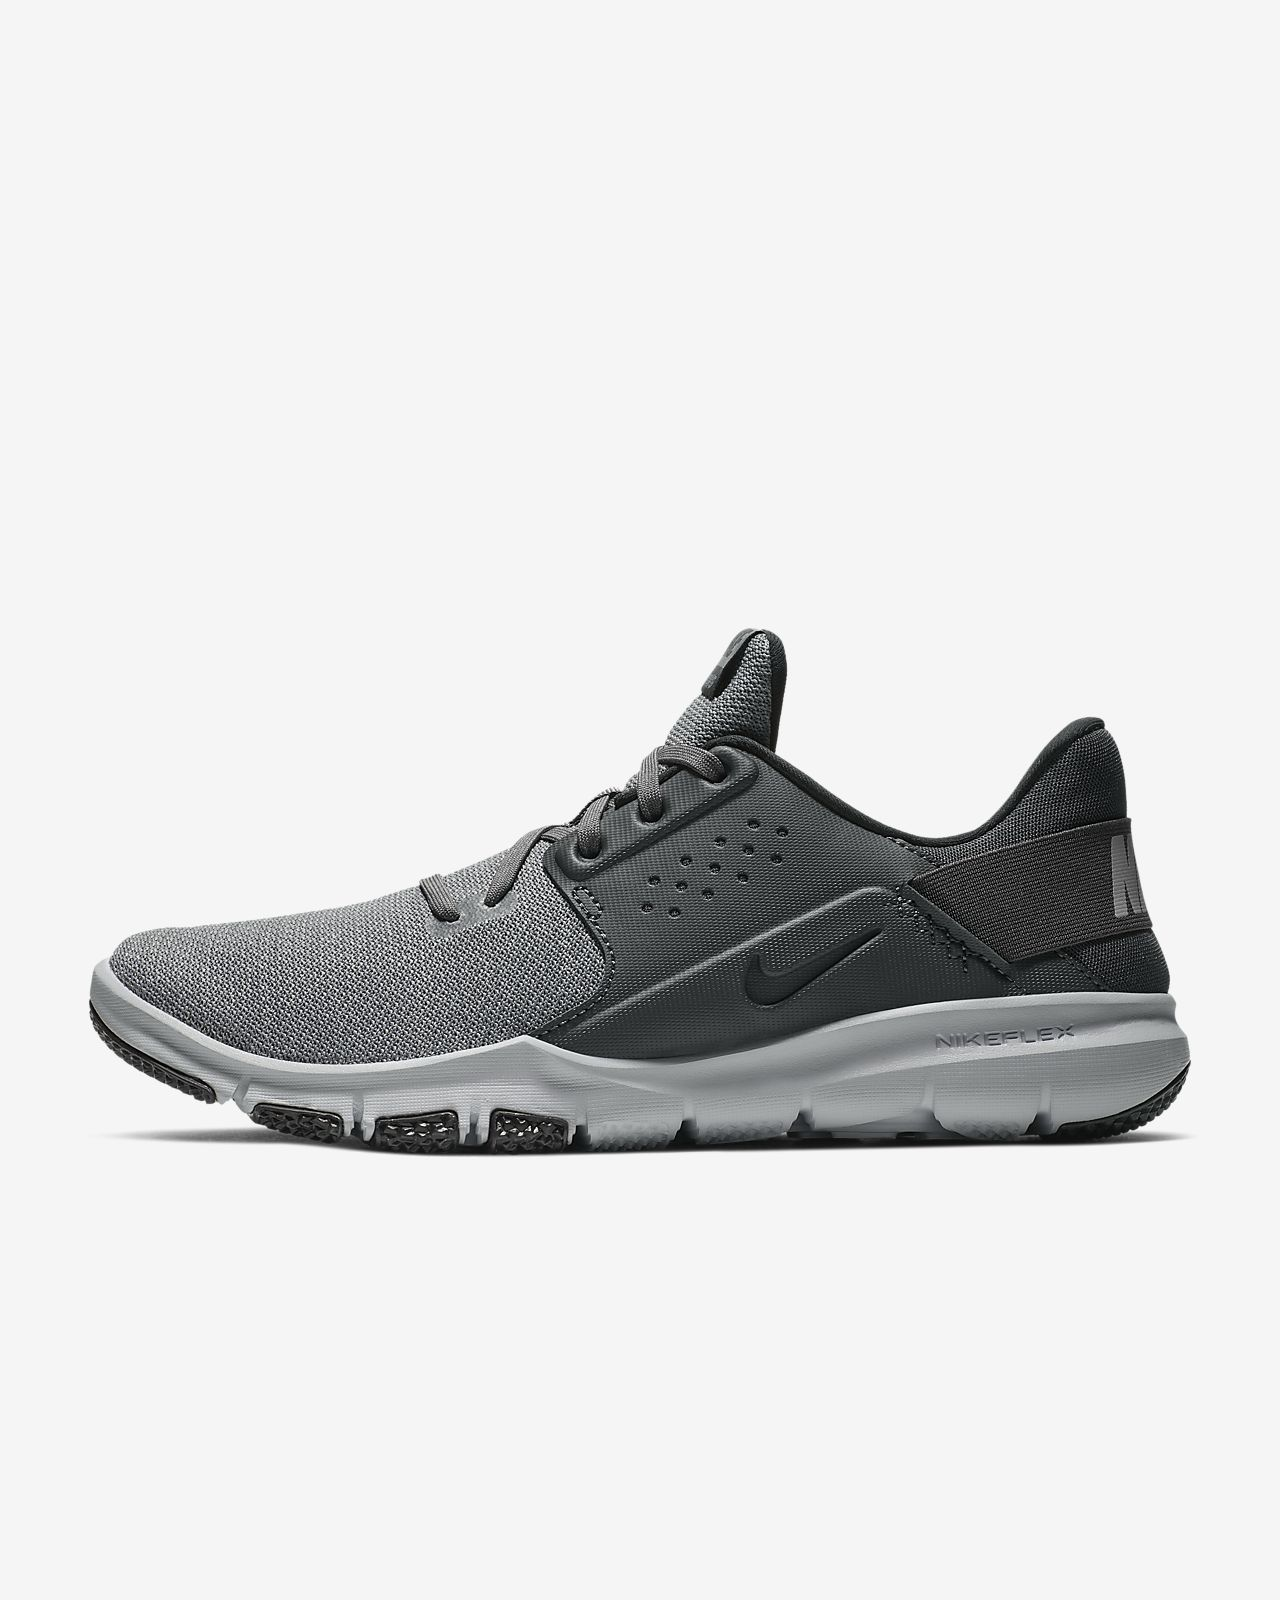 cd396aed30c5 Nike Flex Control 3 Men s Training Shoe. Nike.com